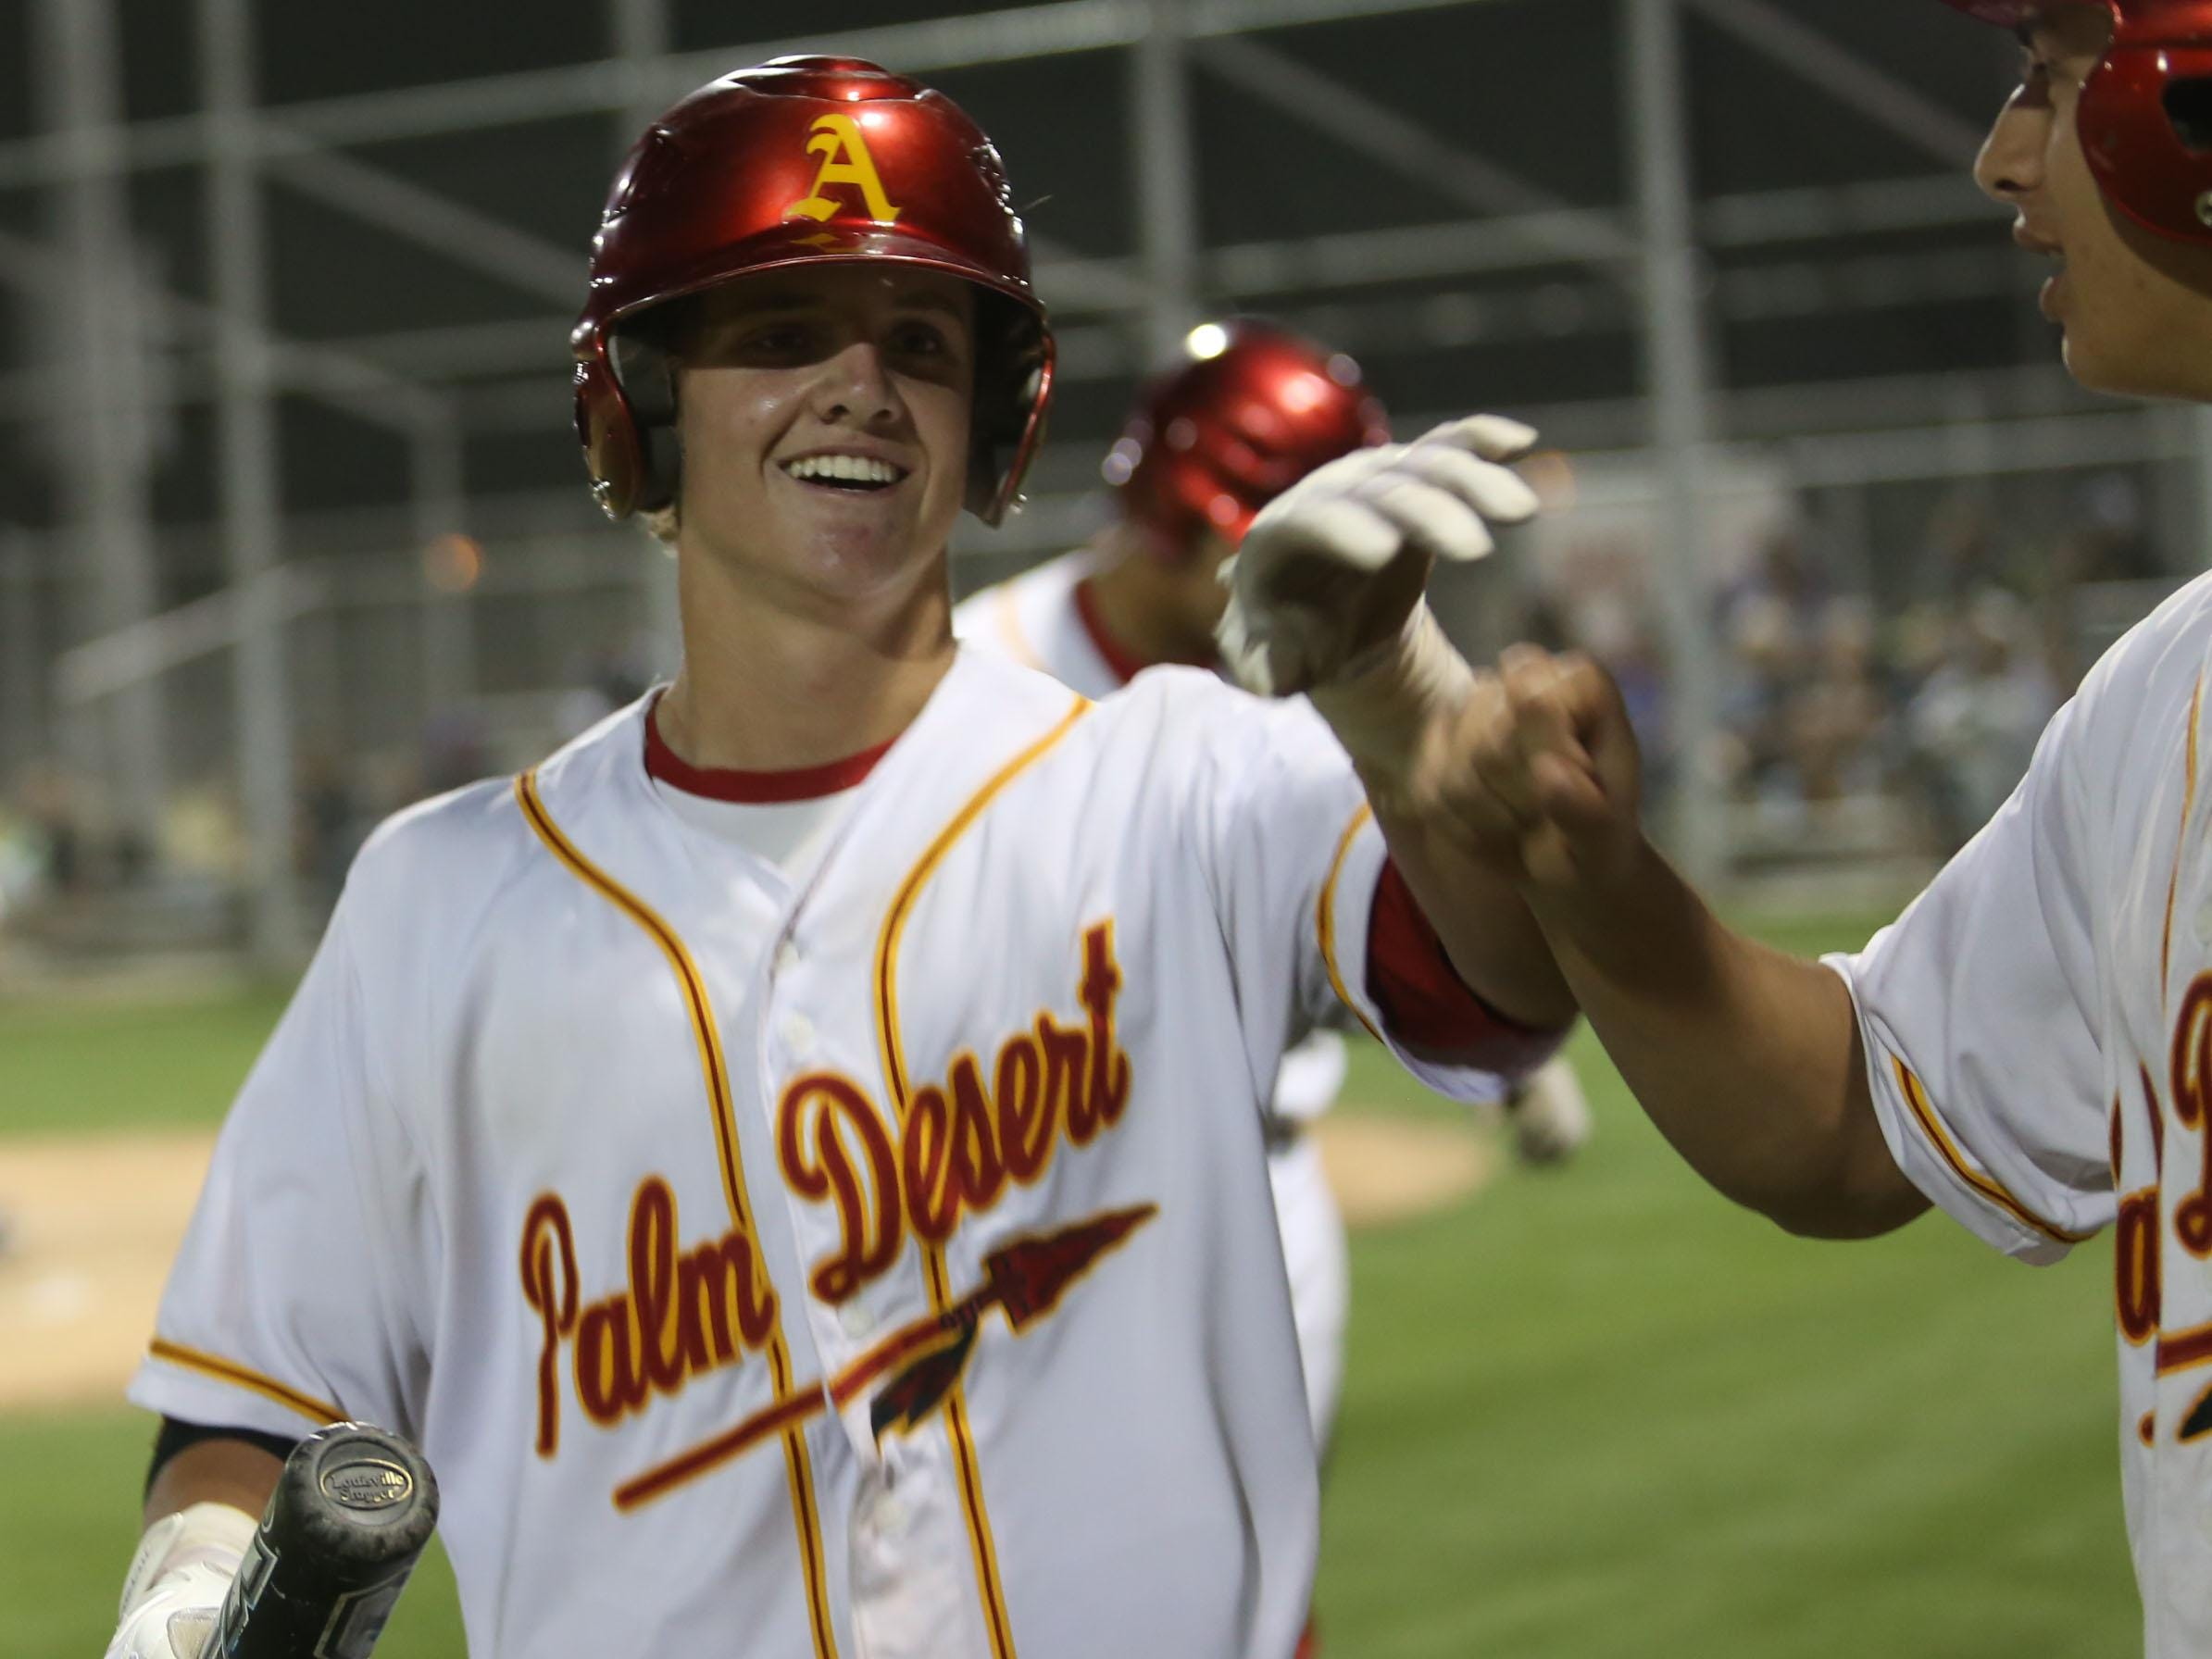 After being taken by the Giants in the 34th round of last week's MLB Draft, recent Palm Desert grad Travis Moniot will opt for the college experience at Oregon.